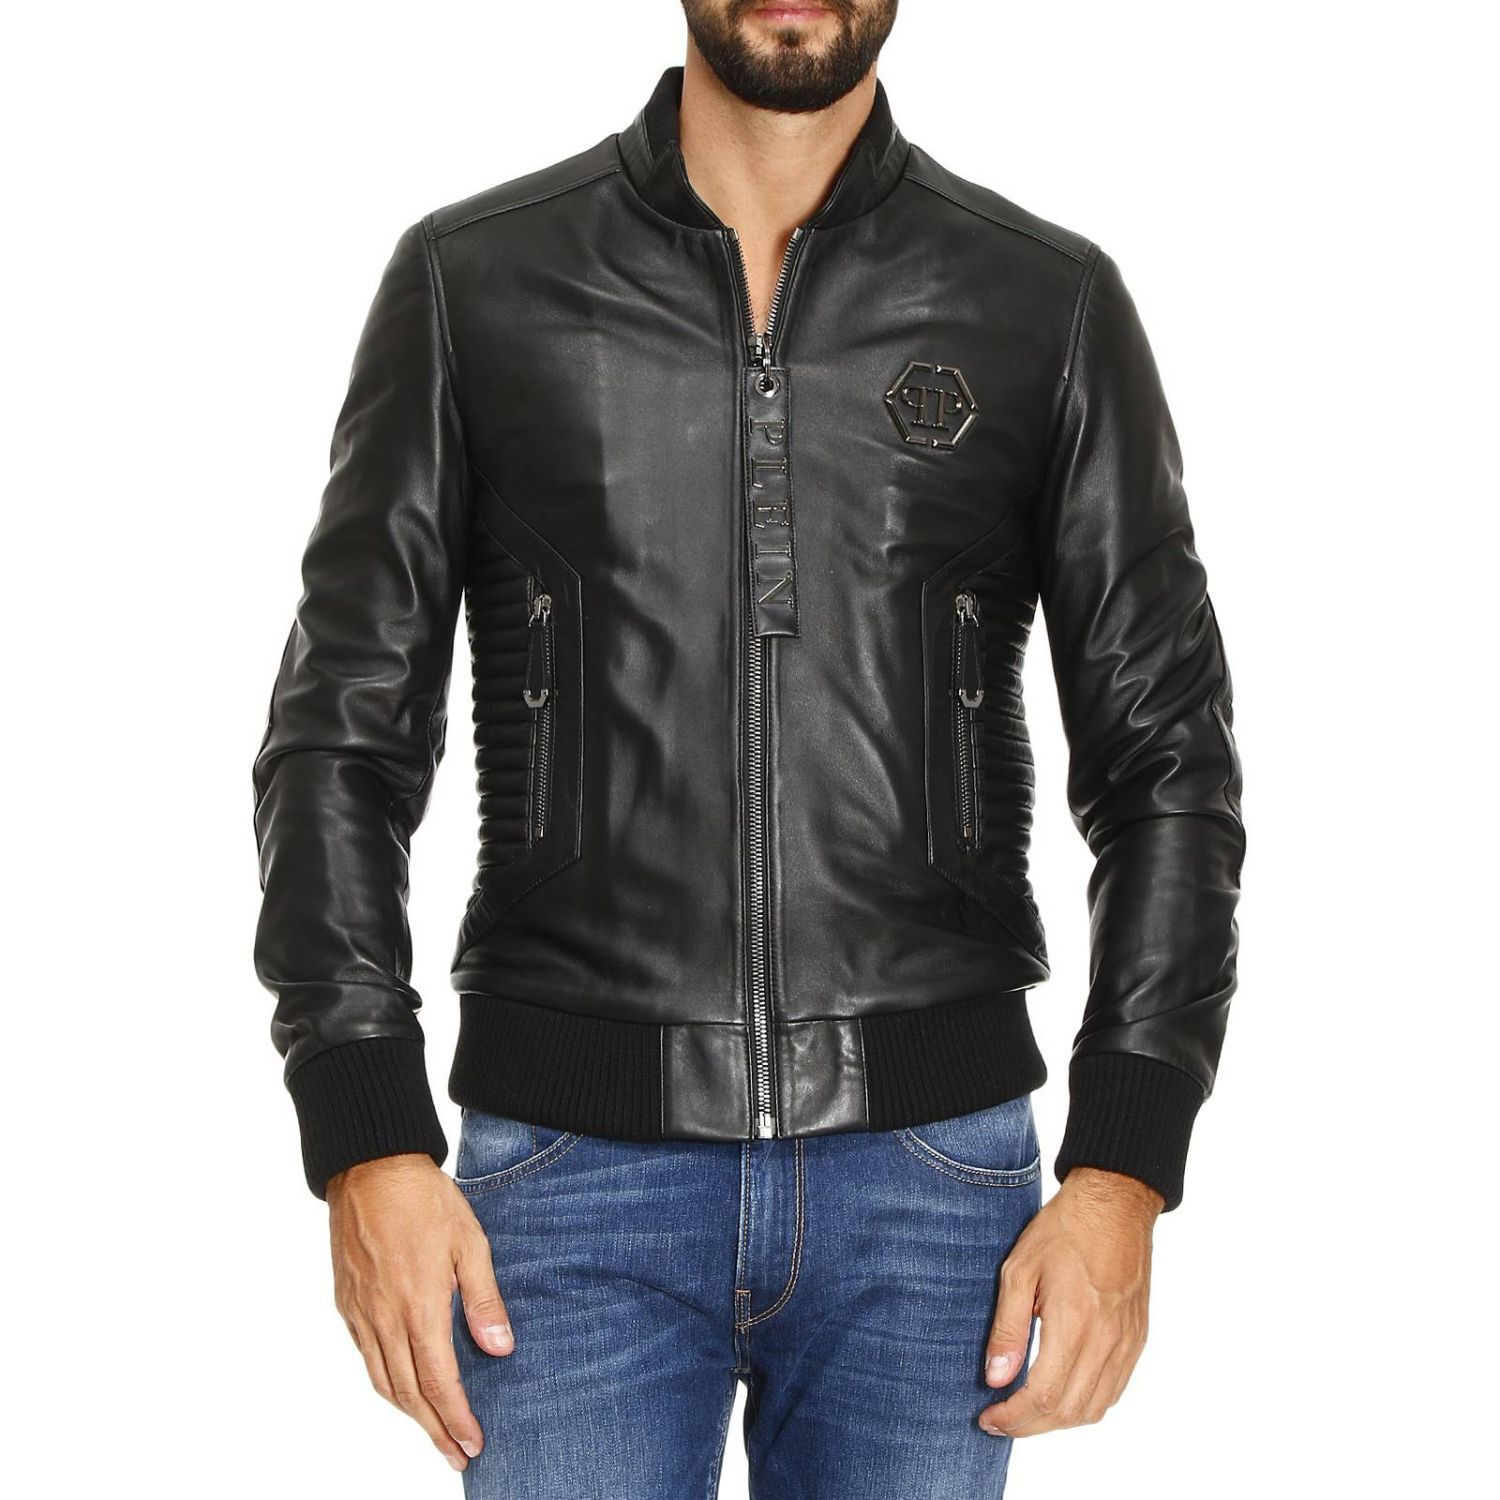 philipp plein jacket jacket men philipp plein black. Black Bedroom Furniture Sets. Home Design Ideas